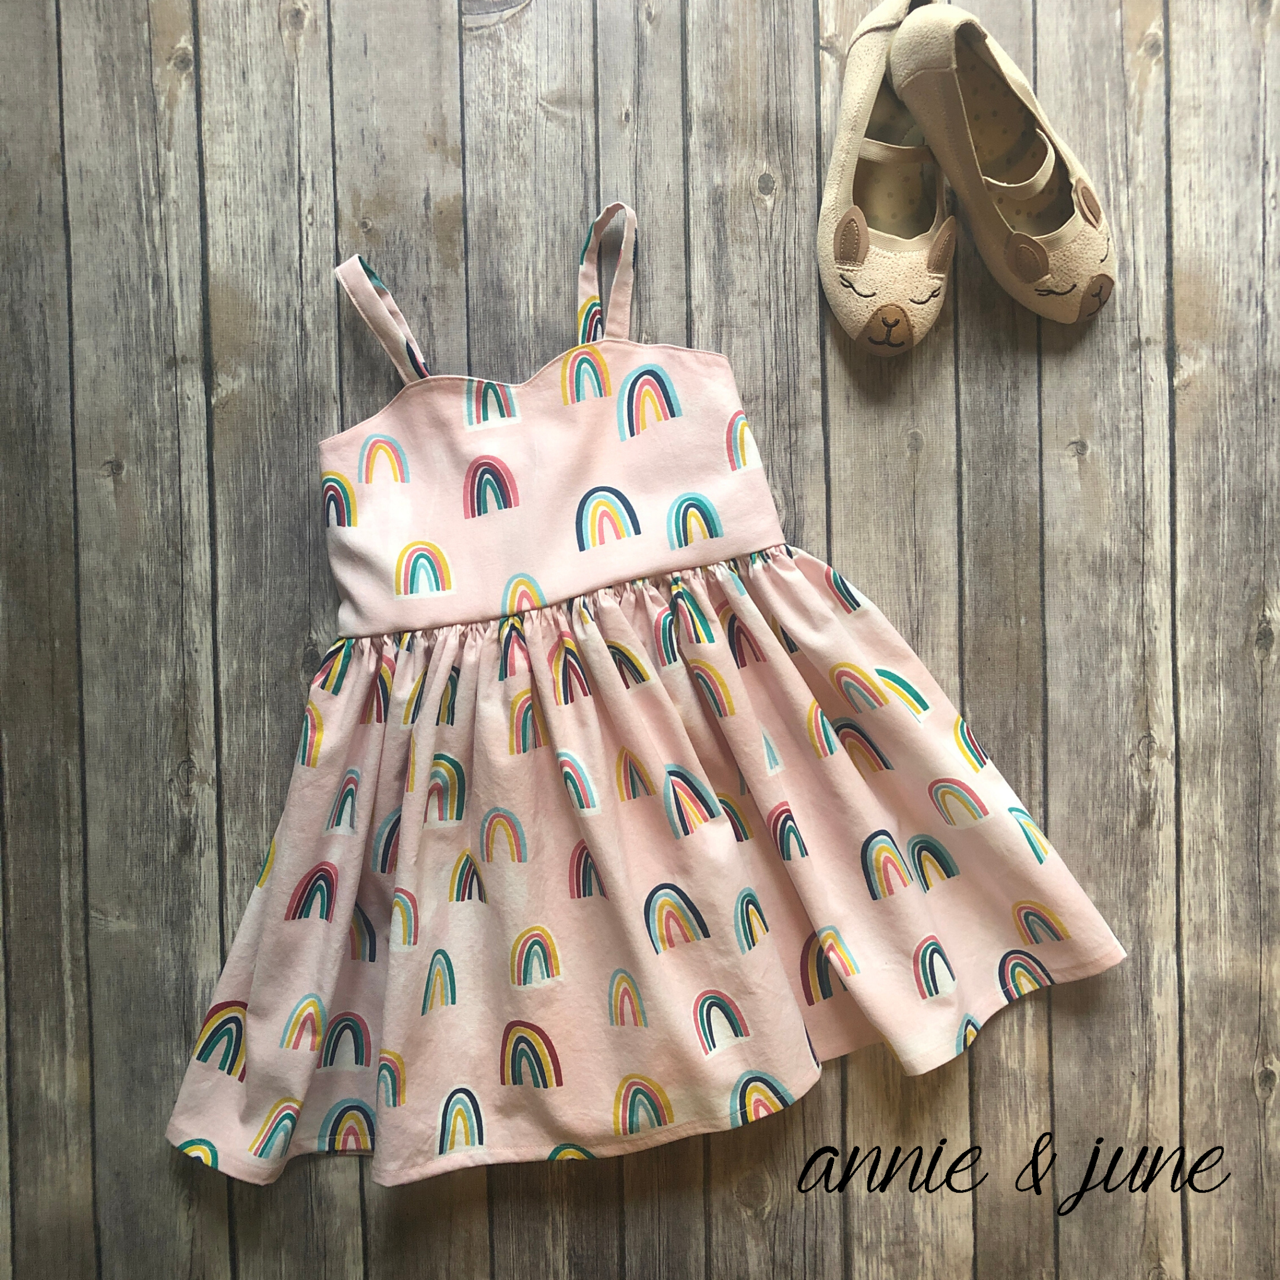 Annie & June | Handmade Sweetheart Dress